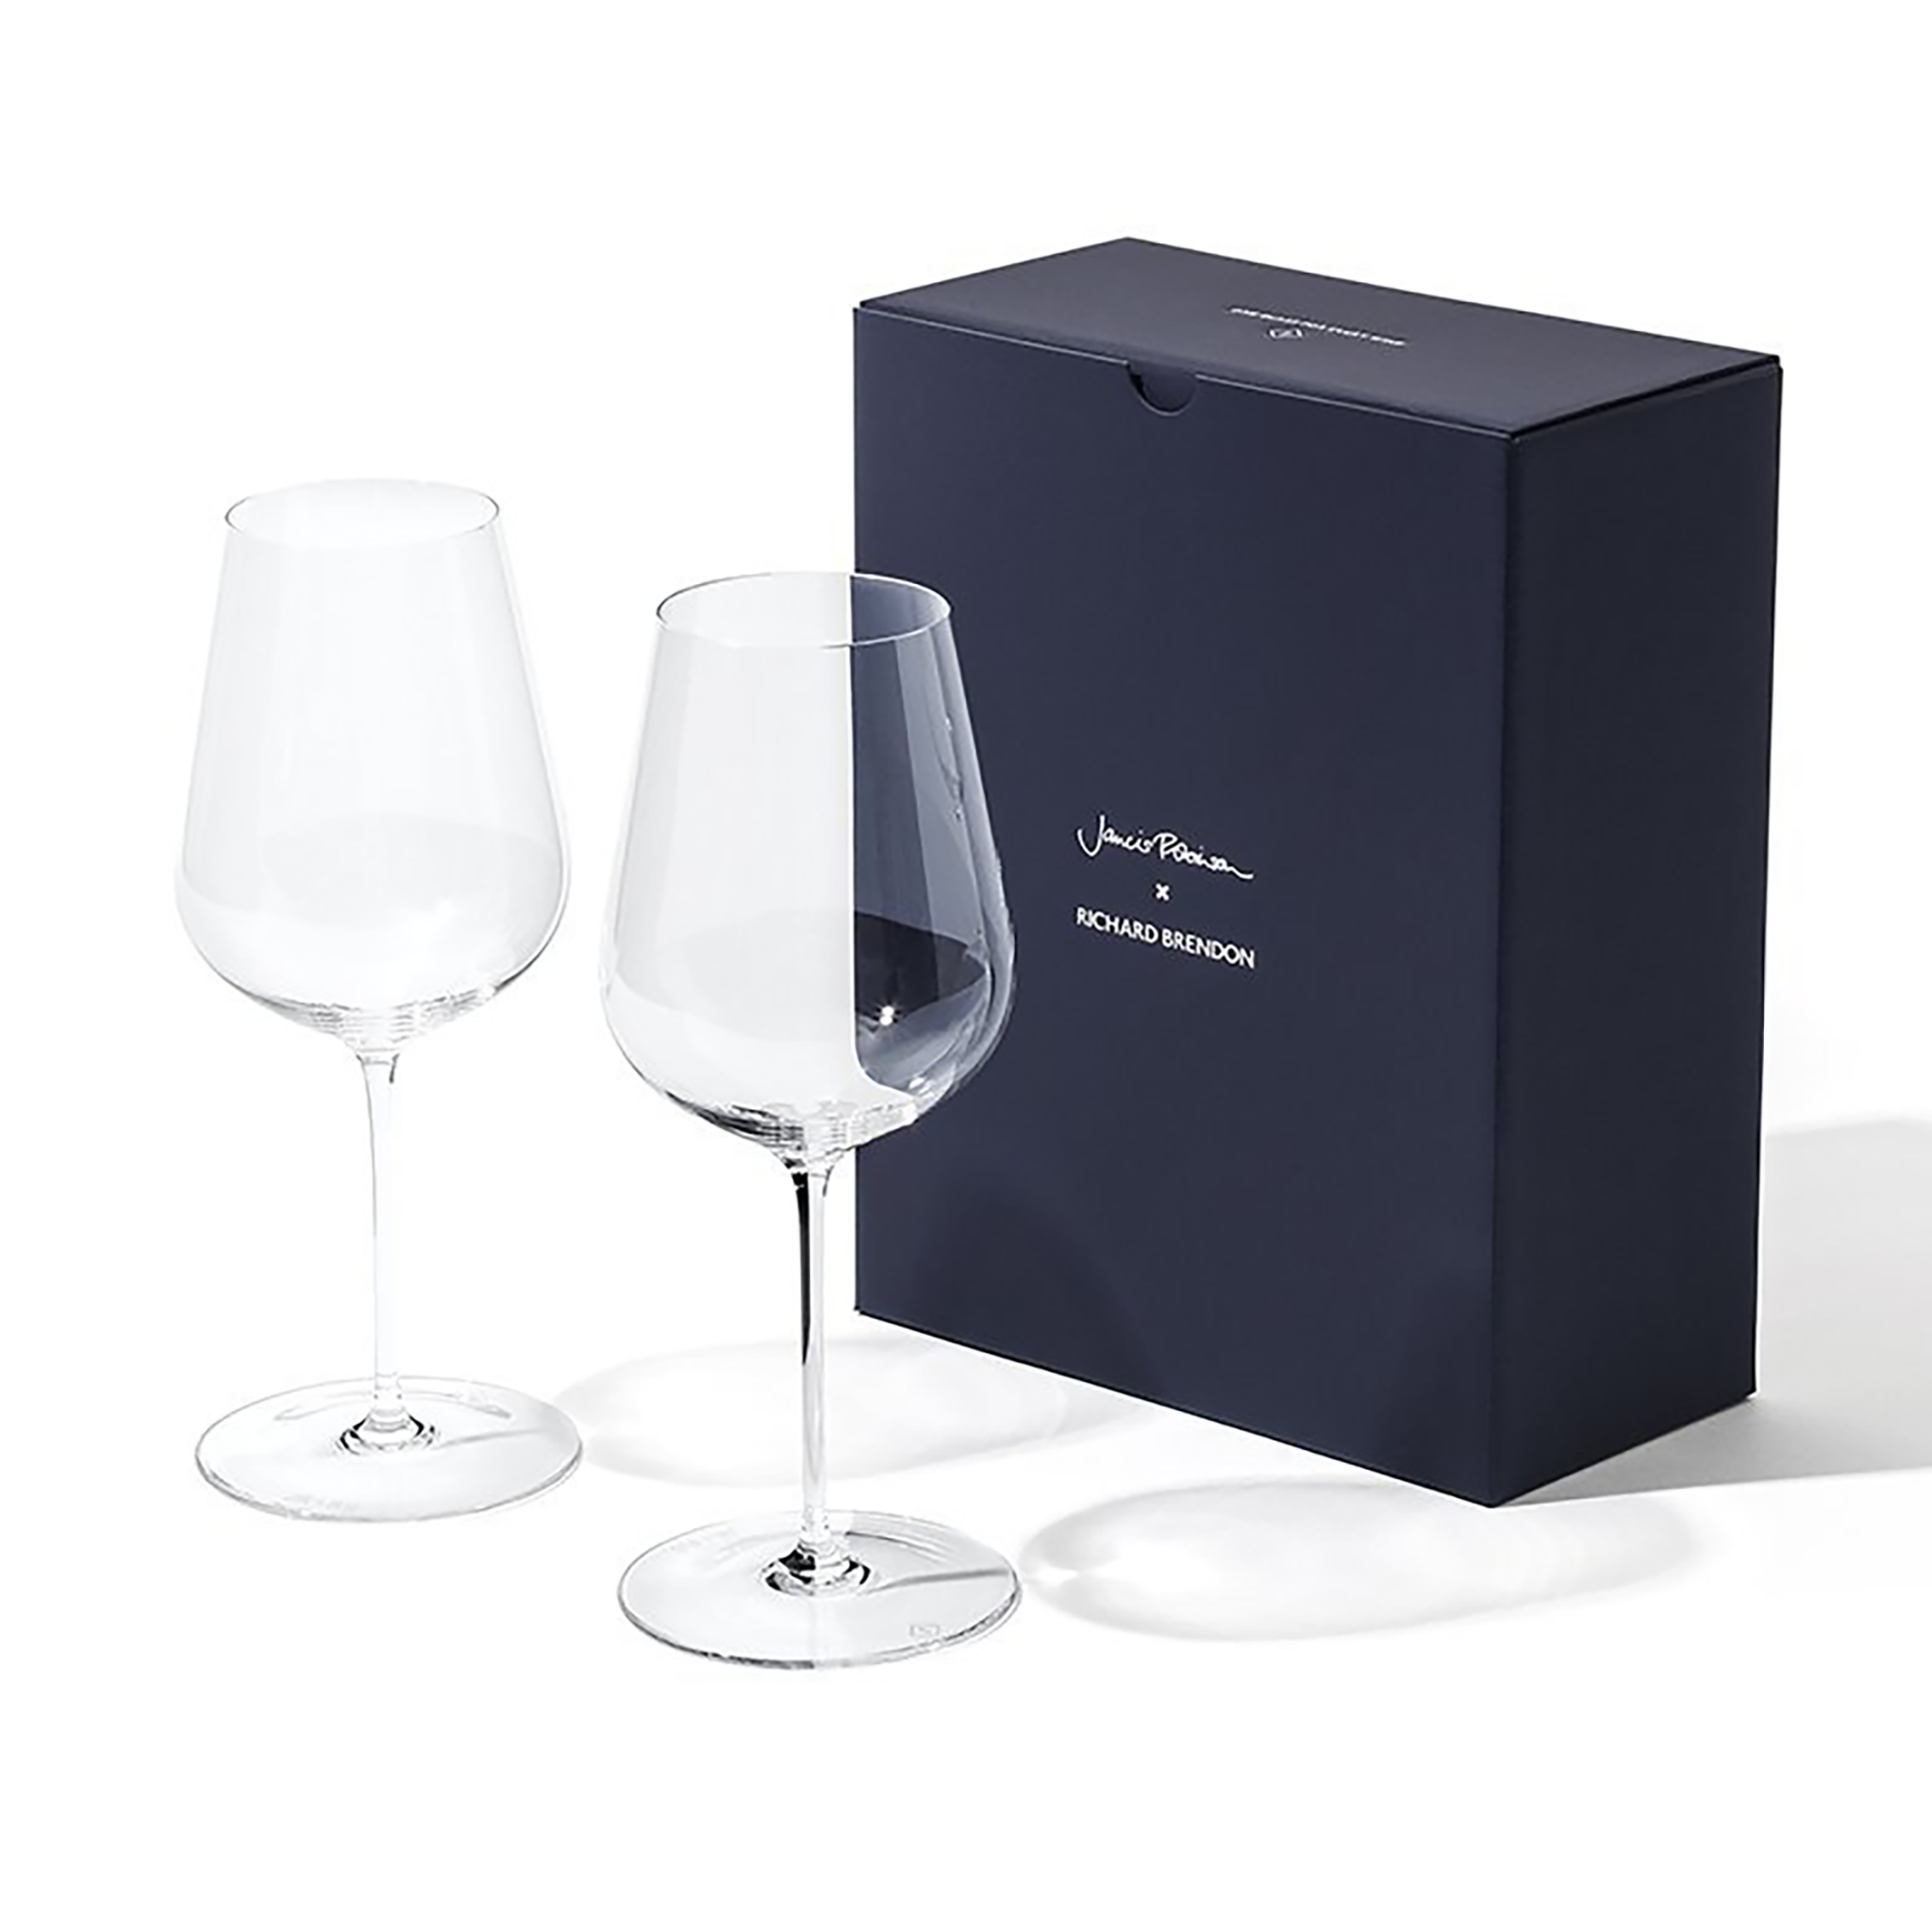 Jancis Robinson The Wine Glass (2 Pack)